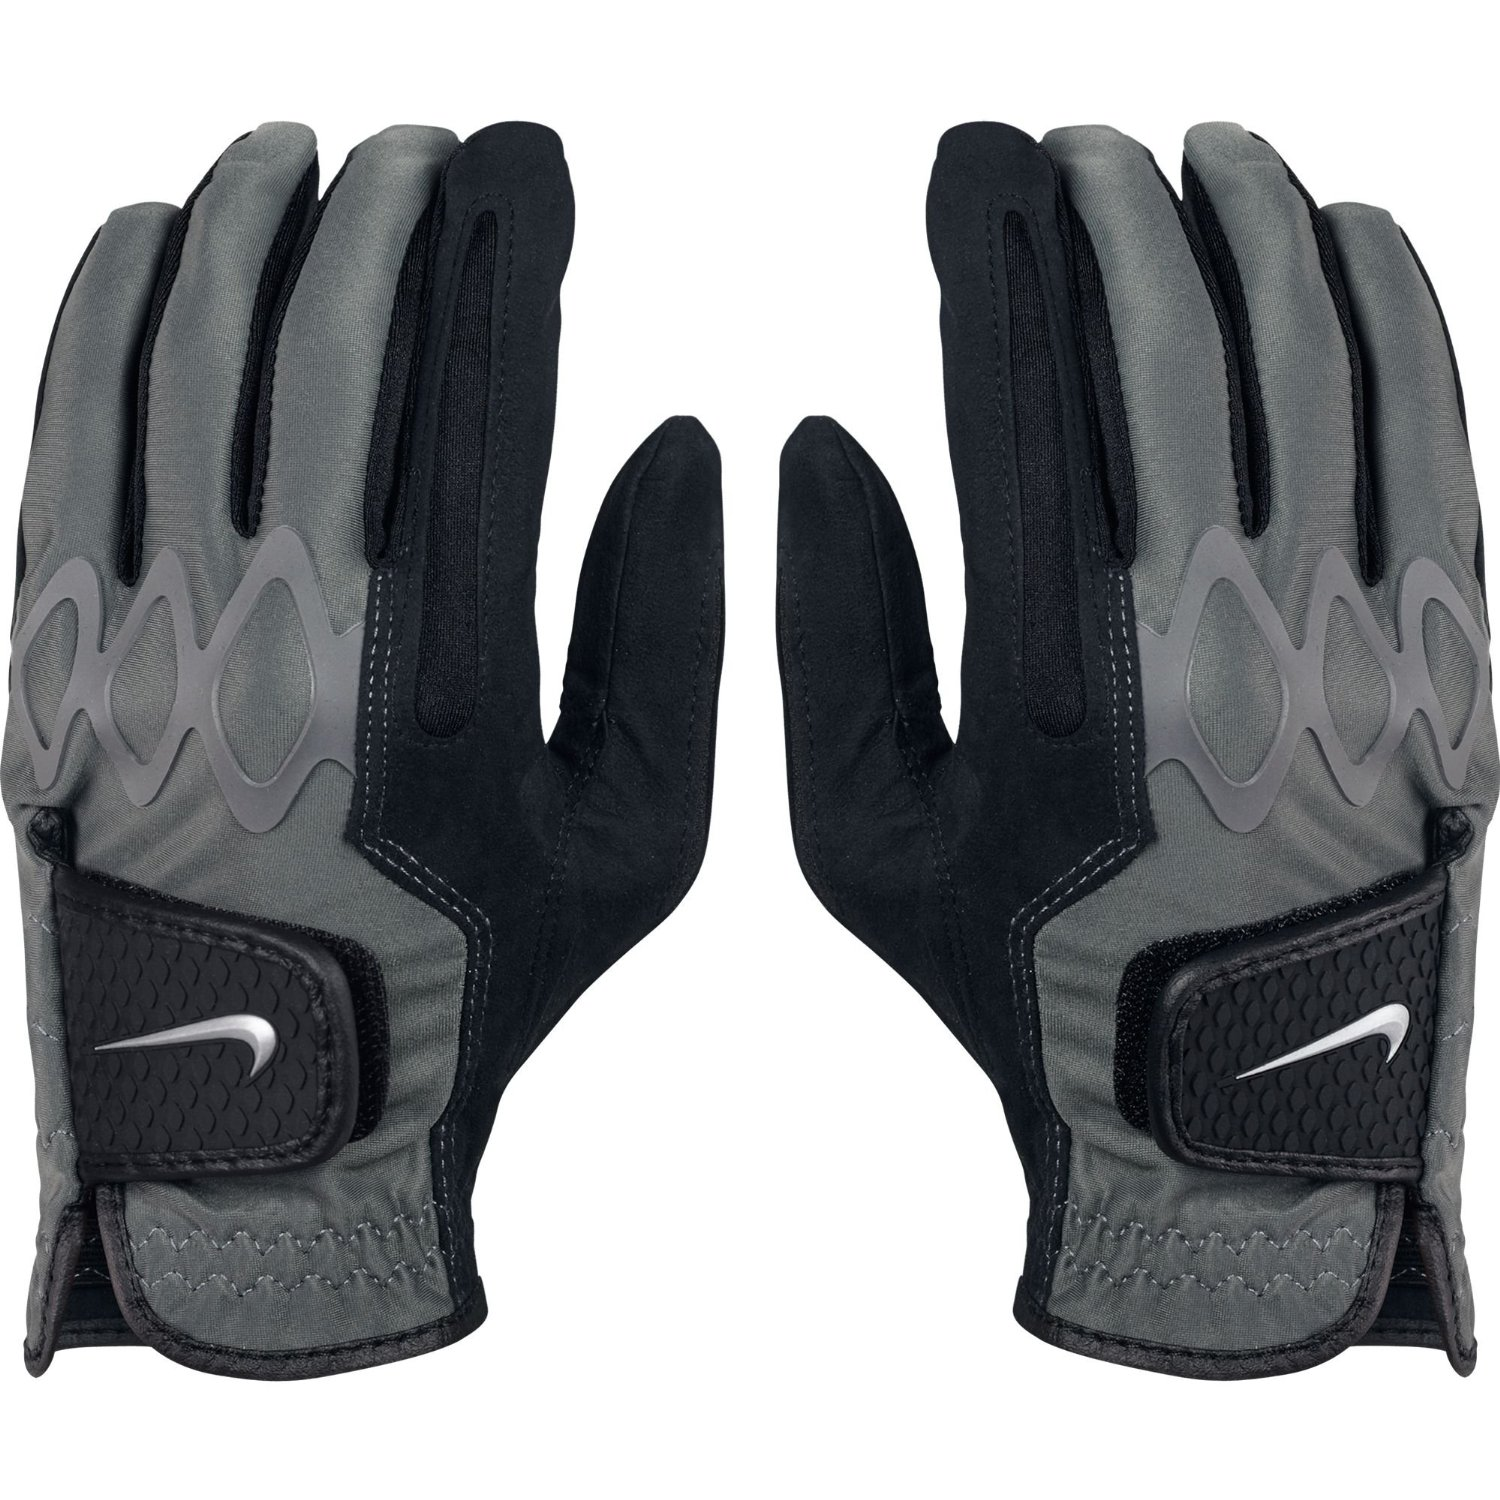 Nike Winter Gloves: Nike All Weather Golf Gloves